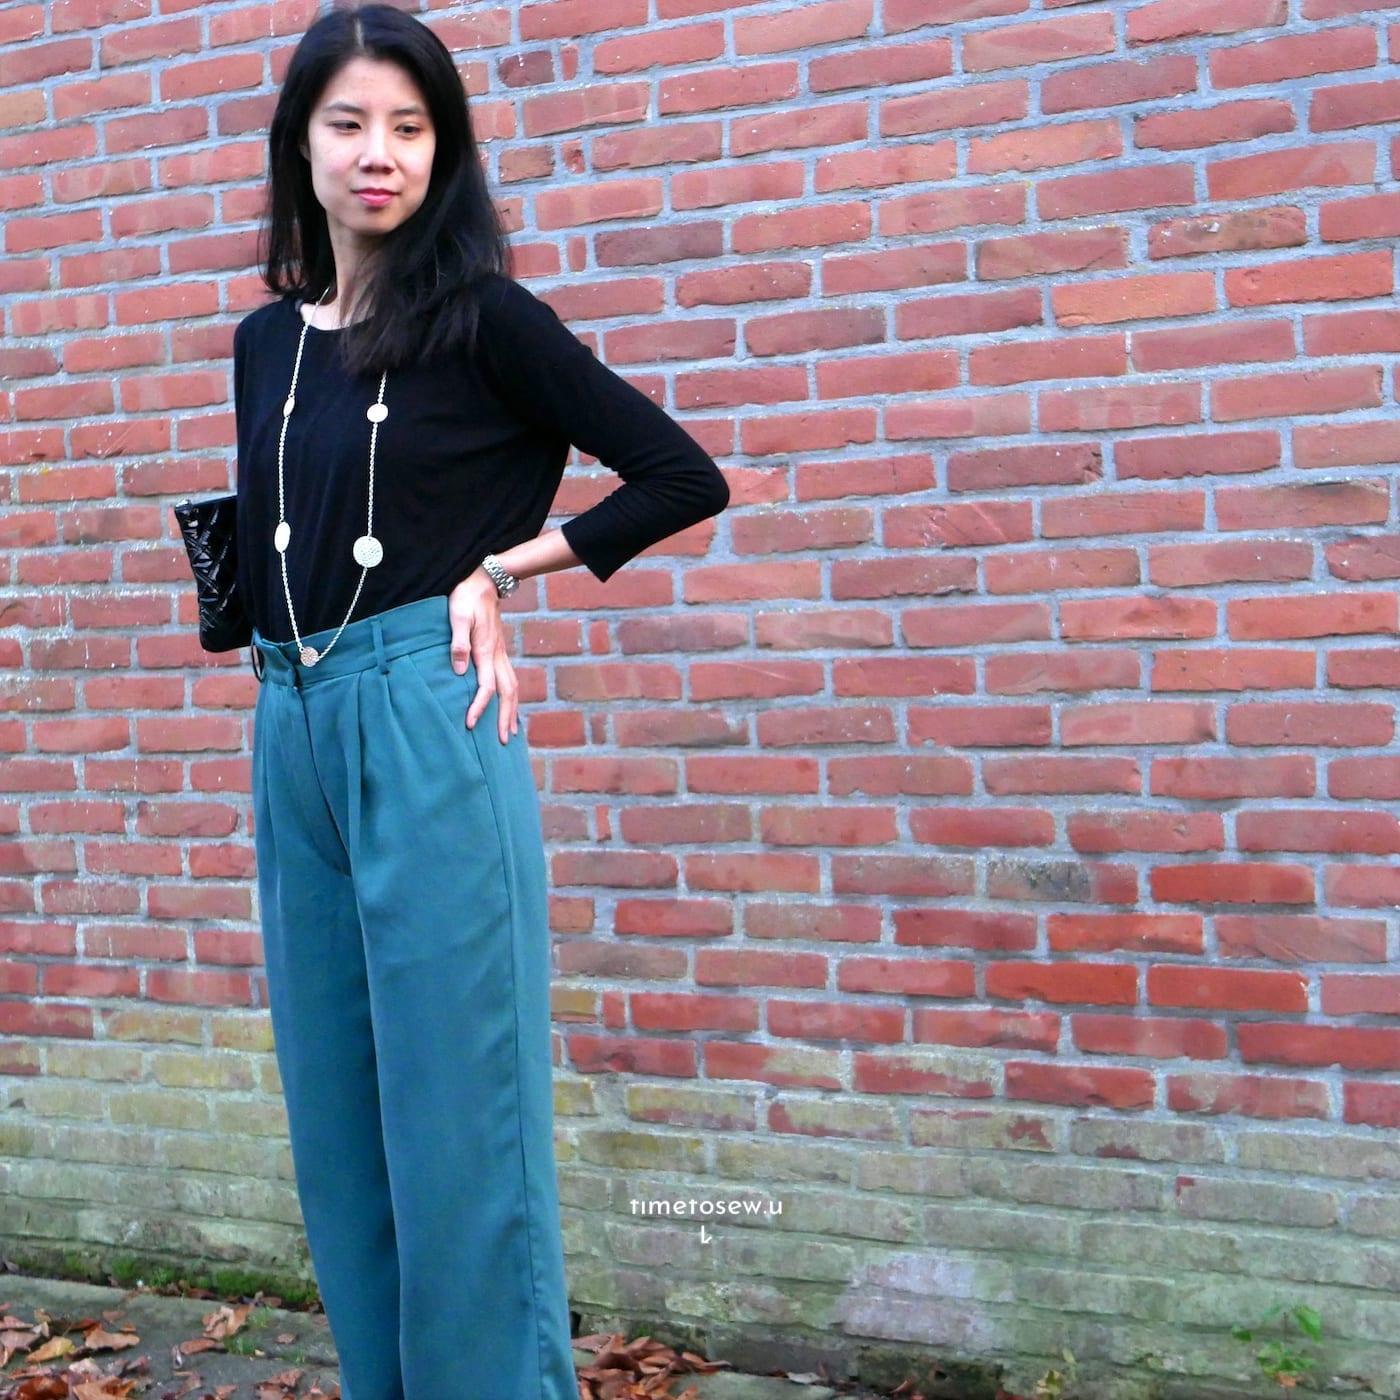 Just Patterns Tatjana trousers by Time to Sew, worn with a black top